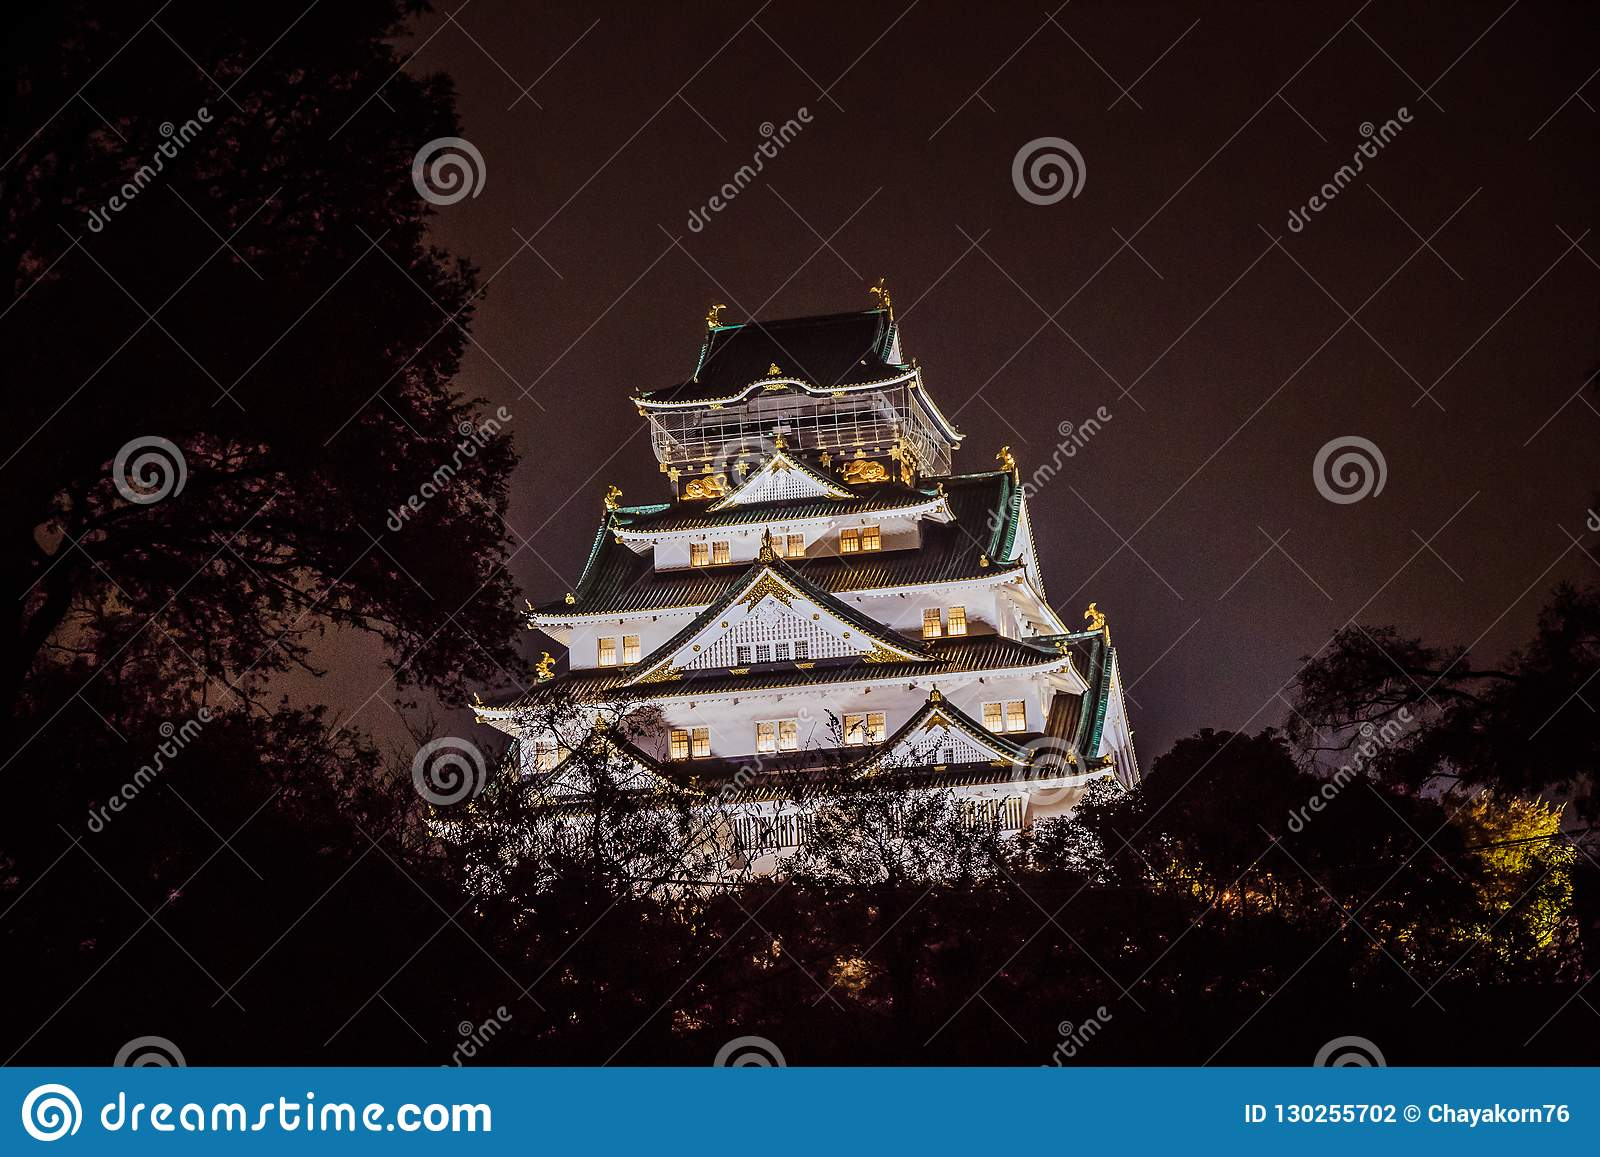 Osaka Castle at dark night, Osaka, Japan